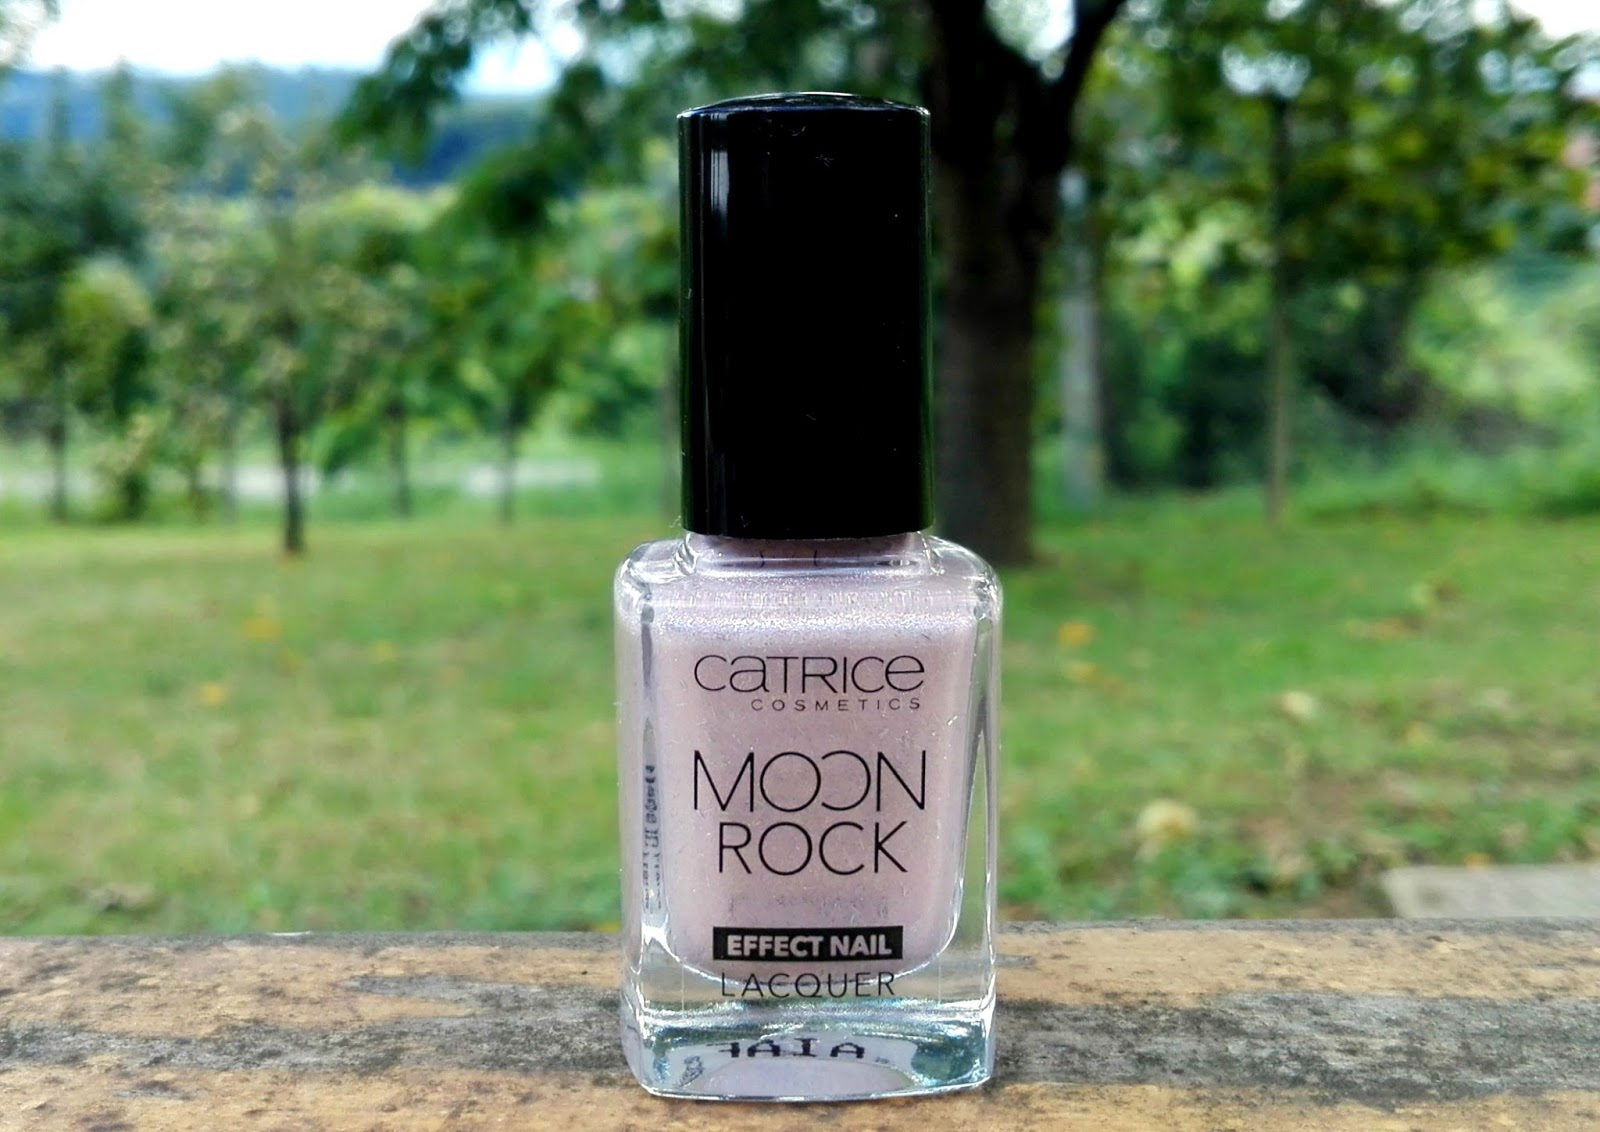 Catrice Moon Rock Effect Nail Lacquer 01 Silky Way Lana Talks